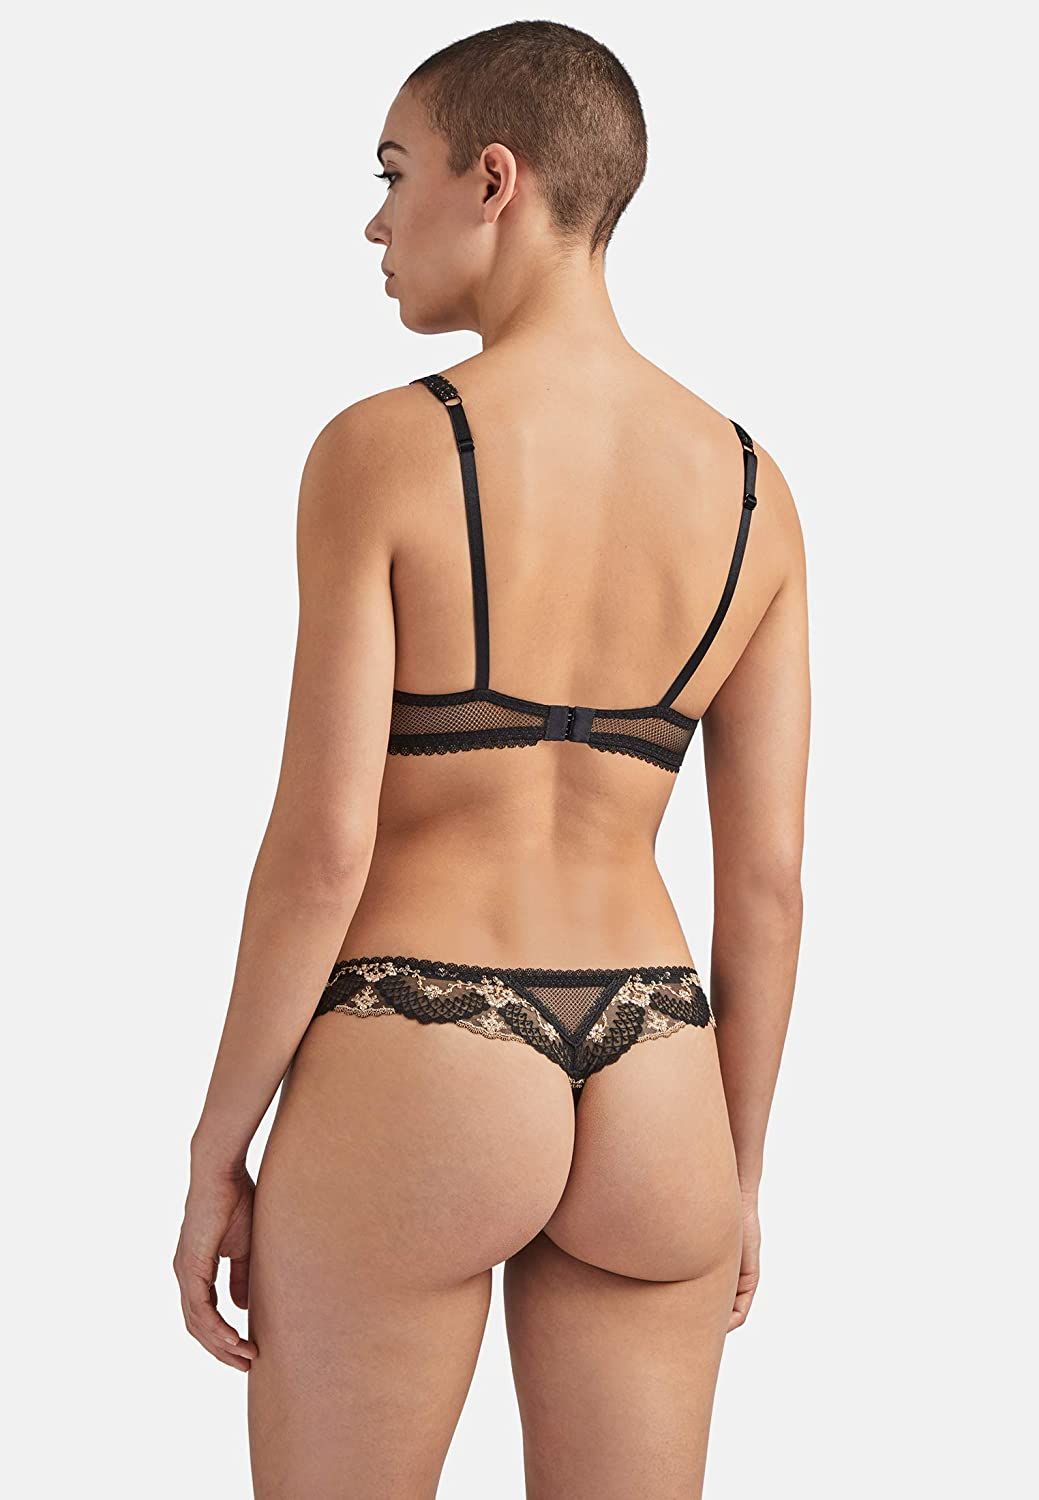 Aubade Womens Belle GALANTE Thong Panties